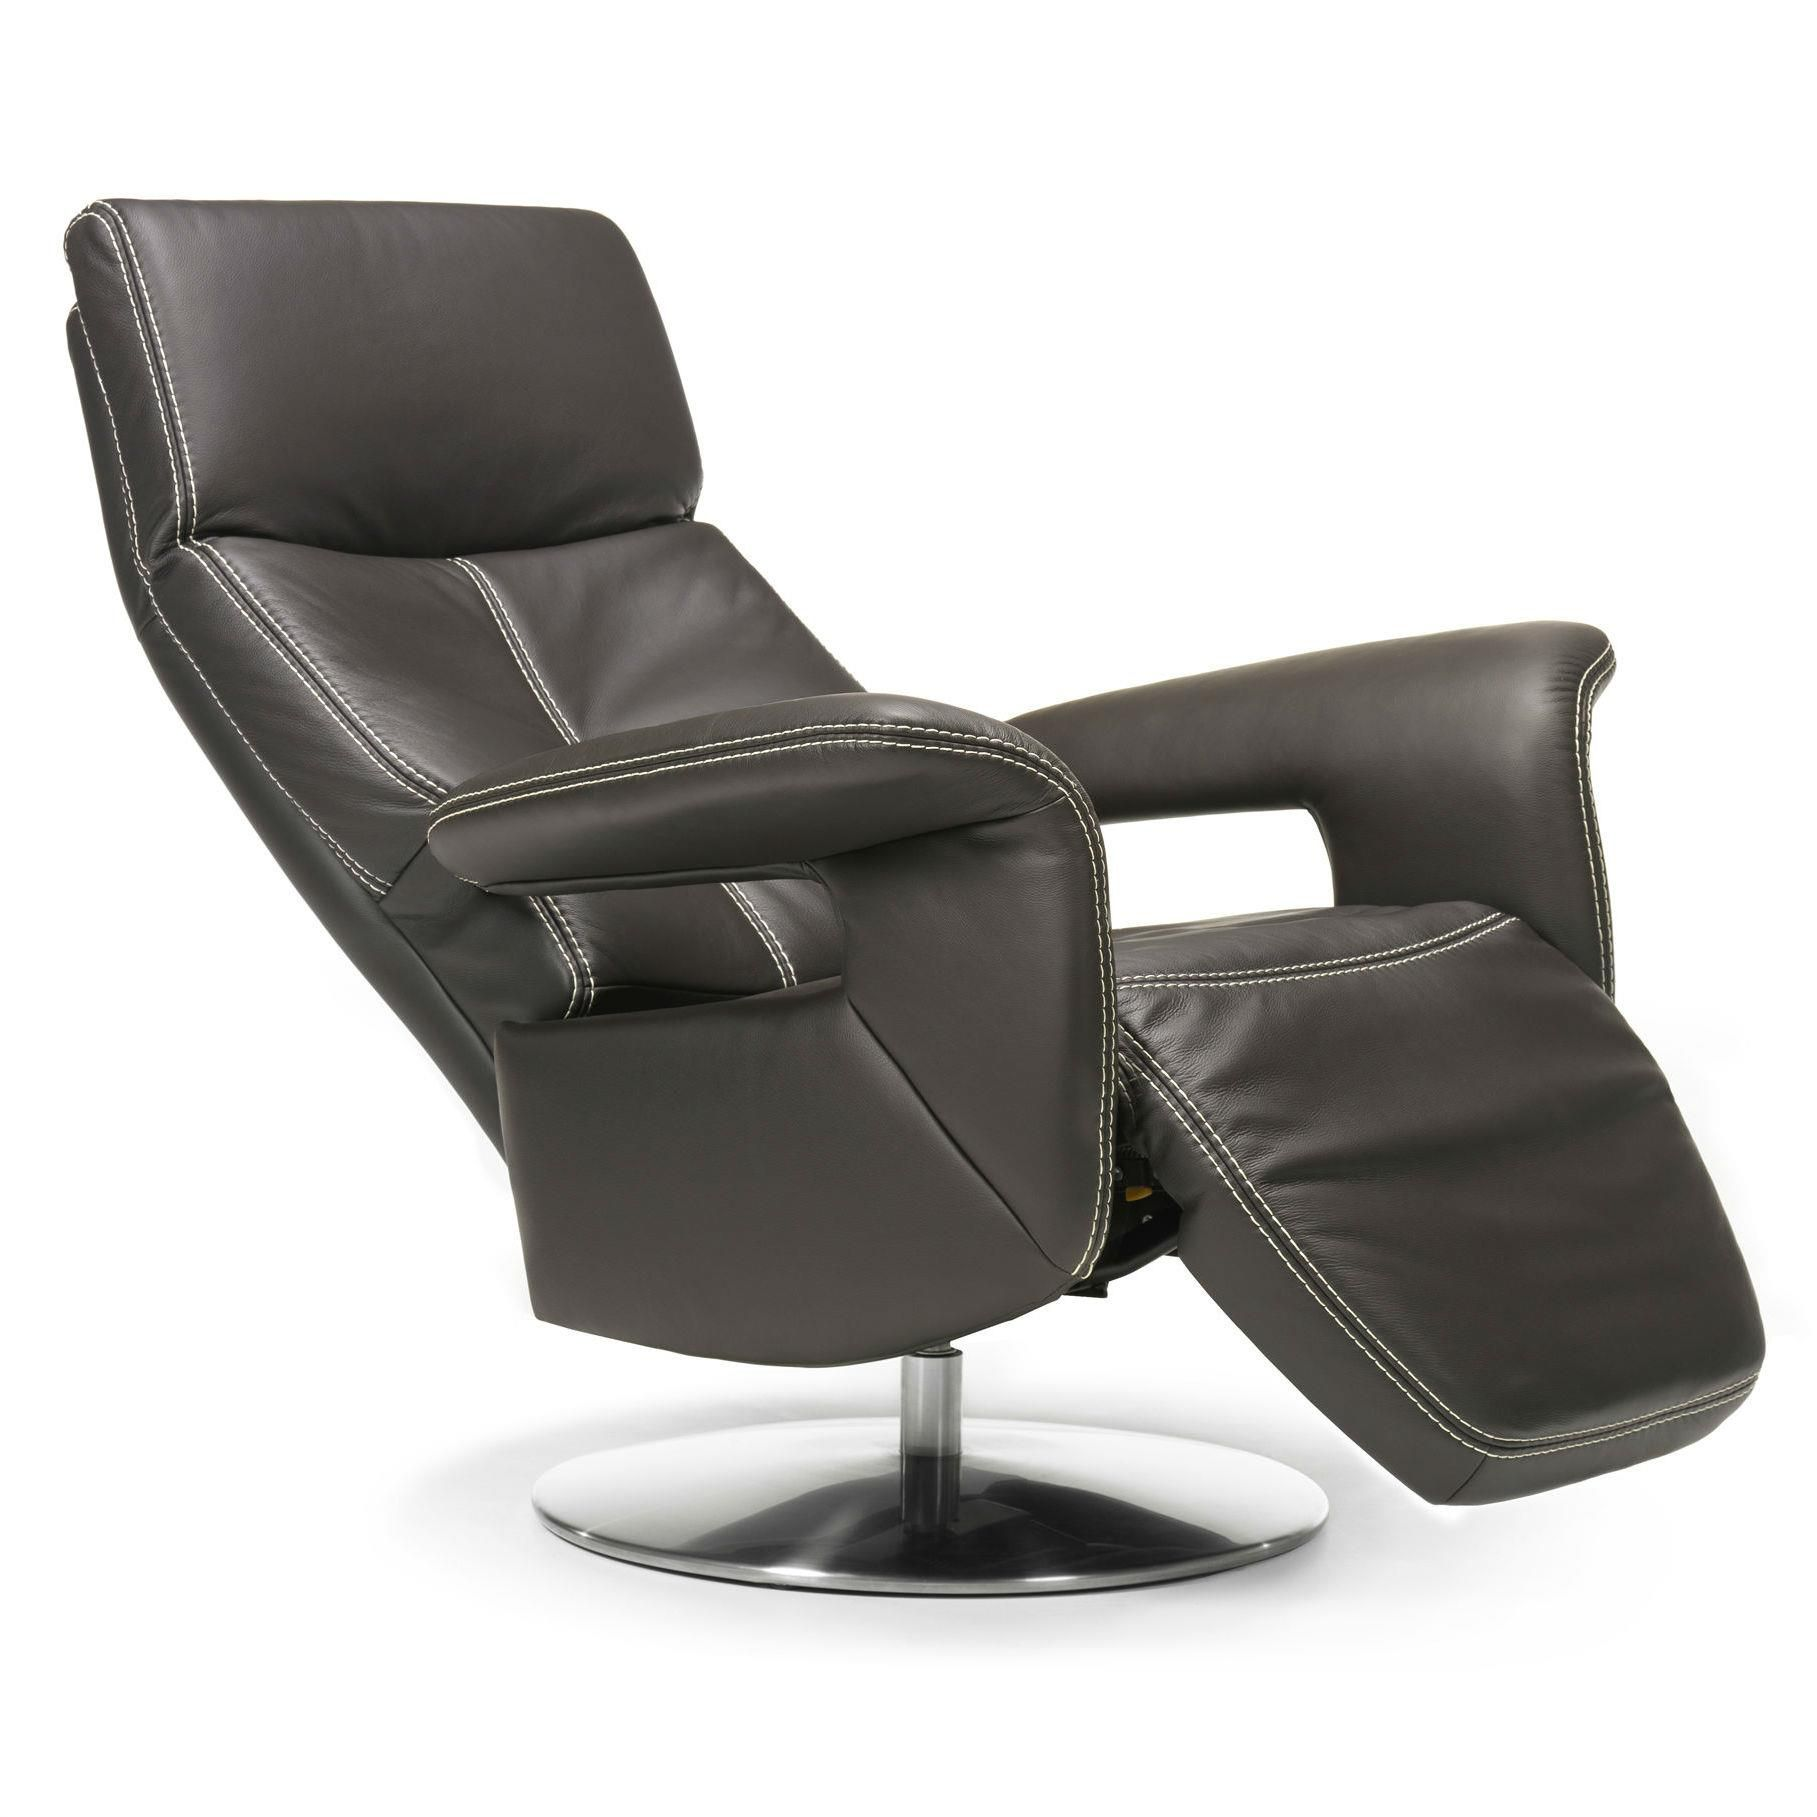 brown products chairs chair walmart com cheap leather ip deluxe padded best choice rocking recliner